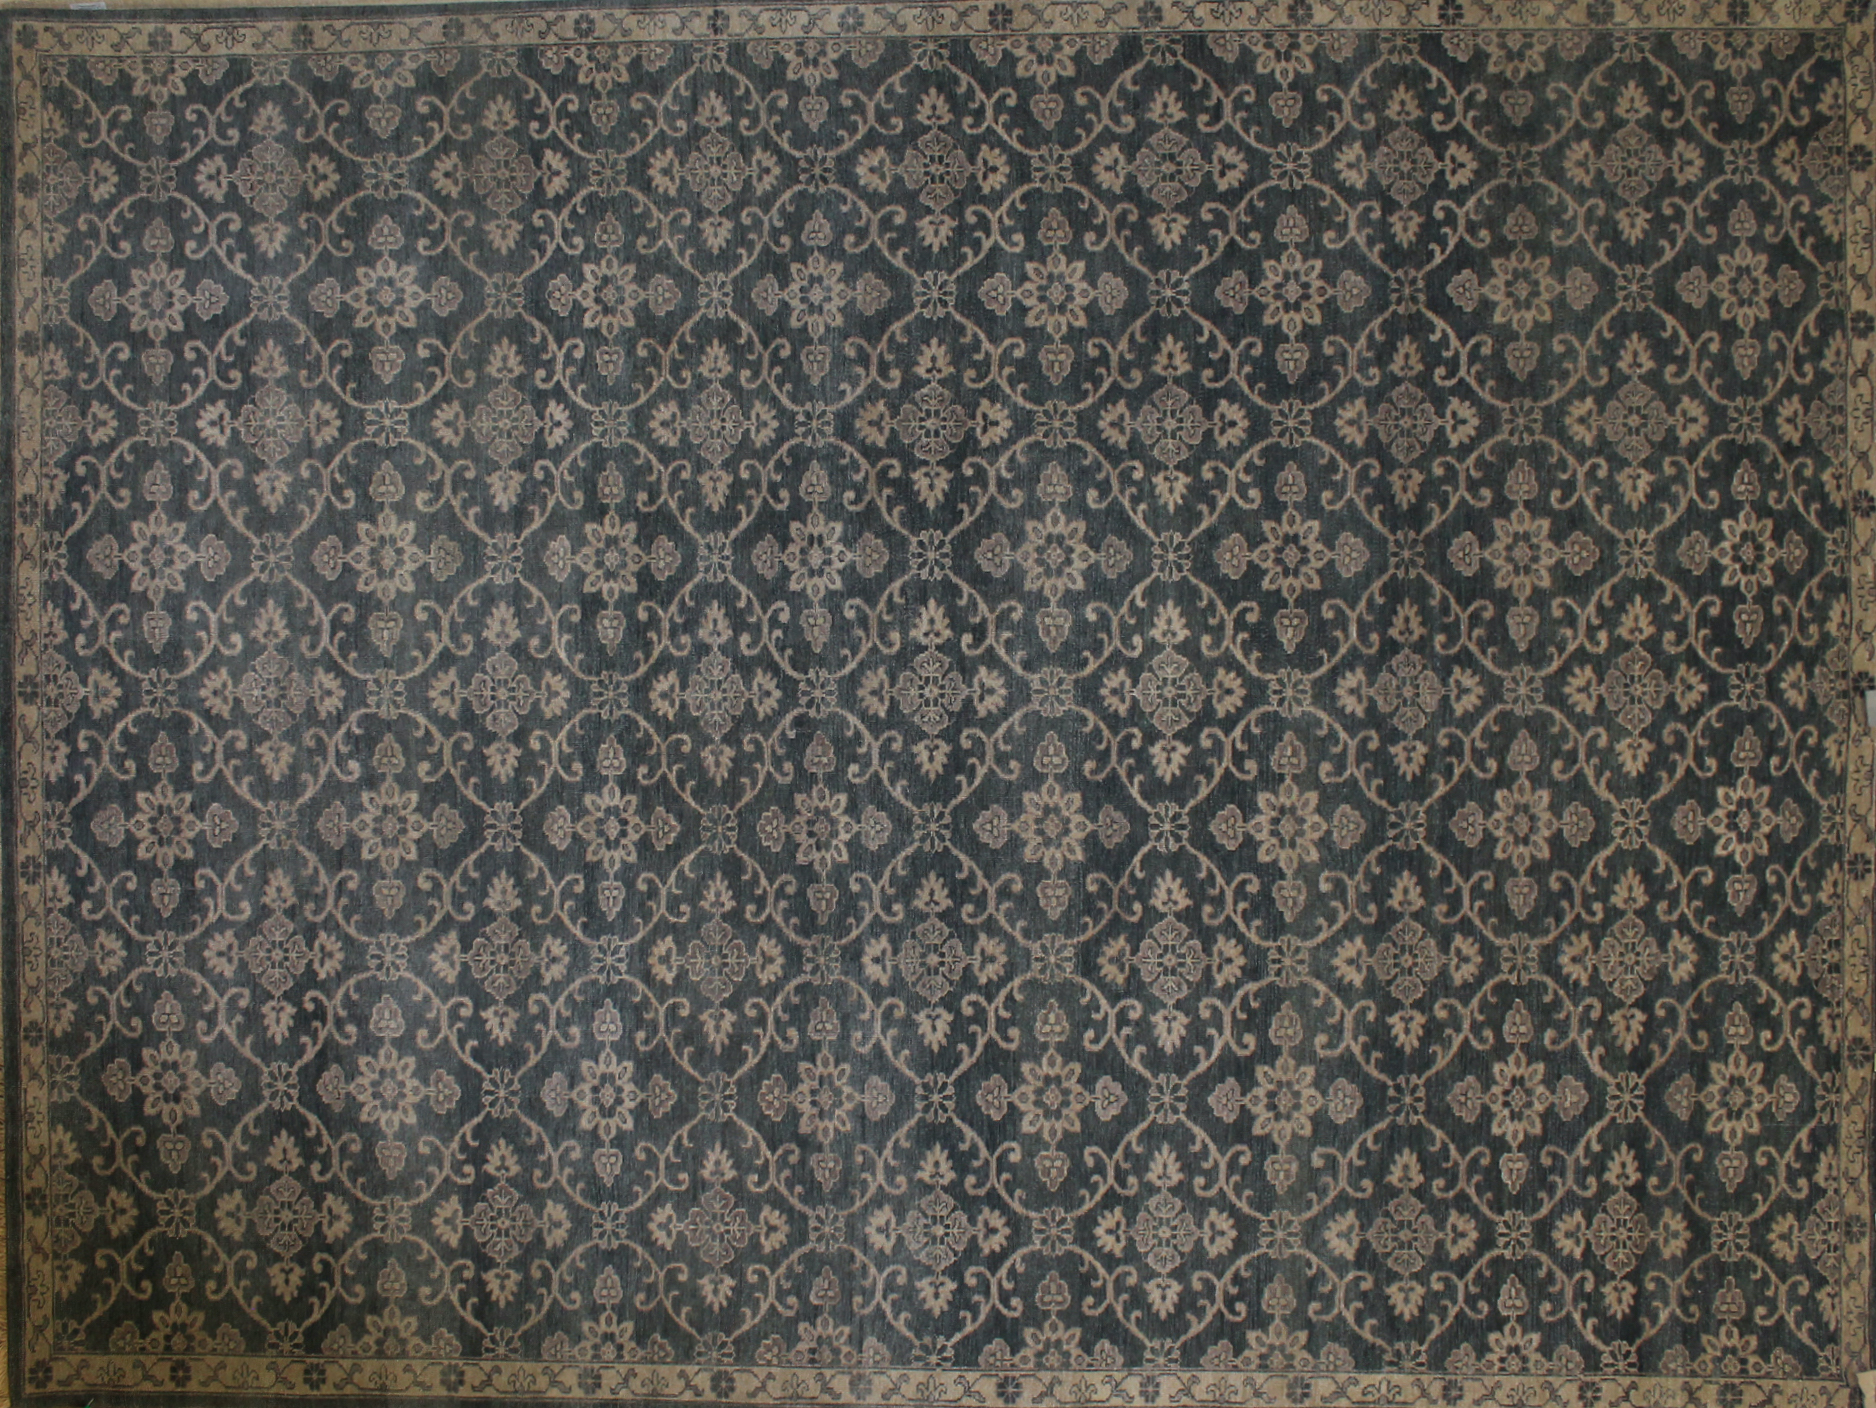 9x12 Contemporary Hand Knotted Wool Area Rug - MR19100